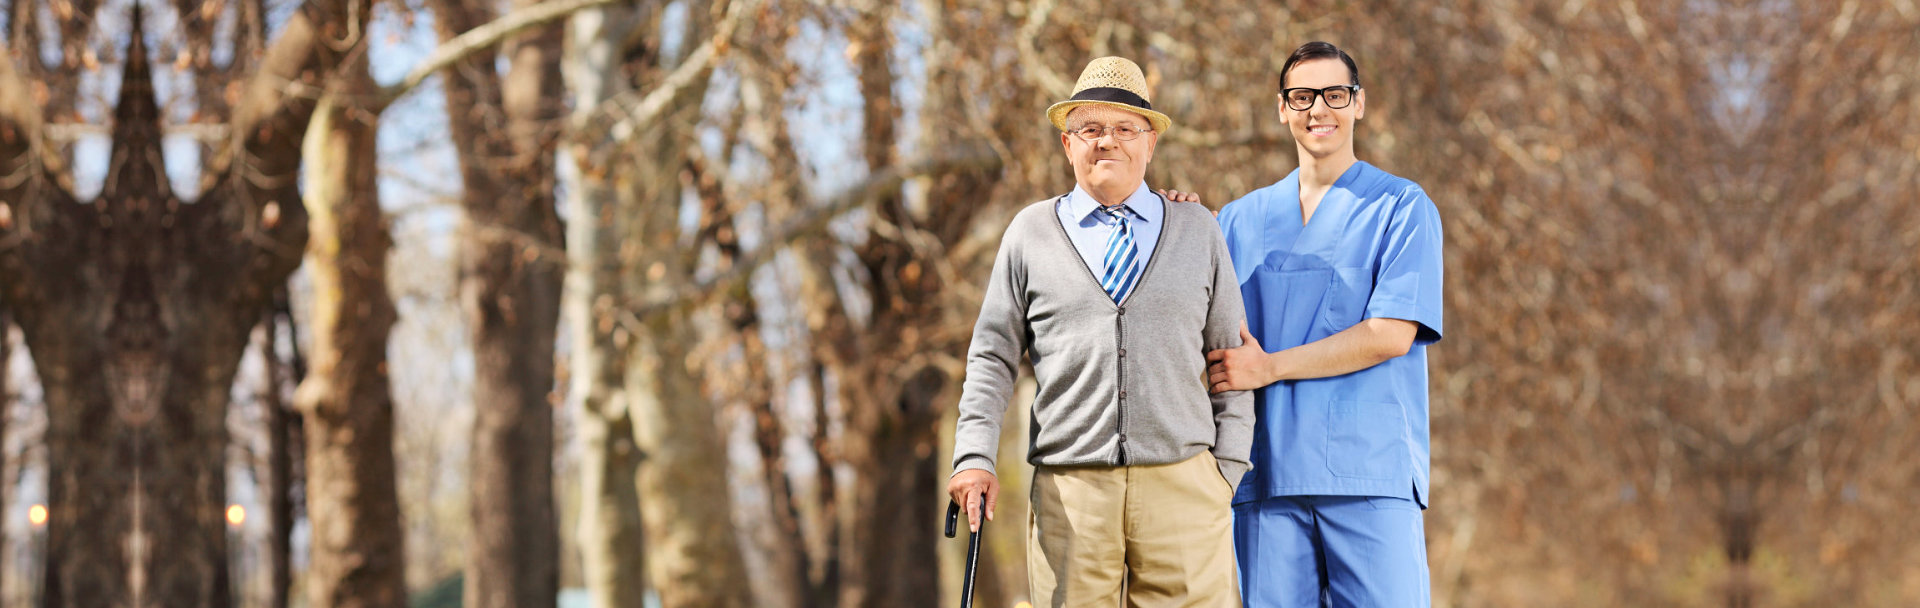 elderly with a caregiver